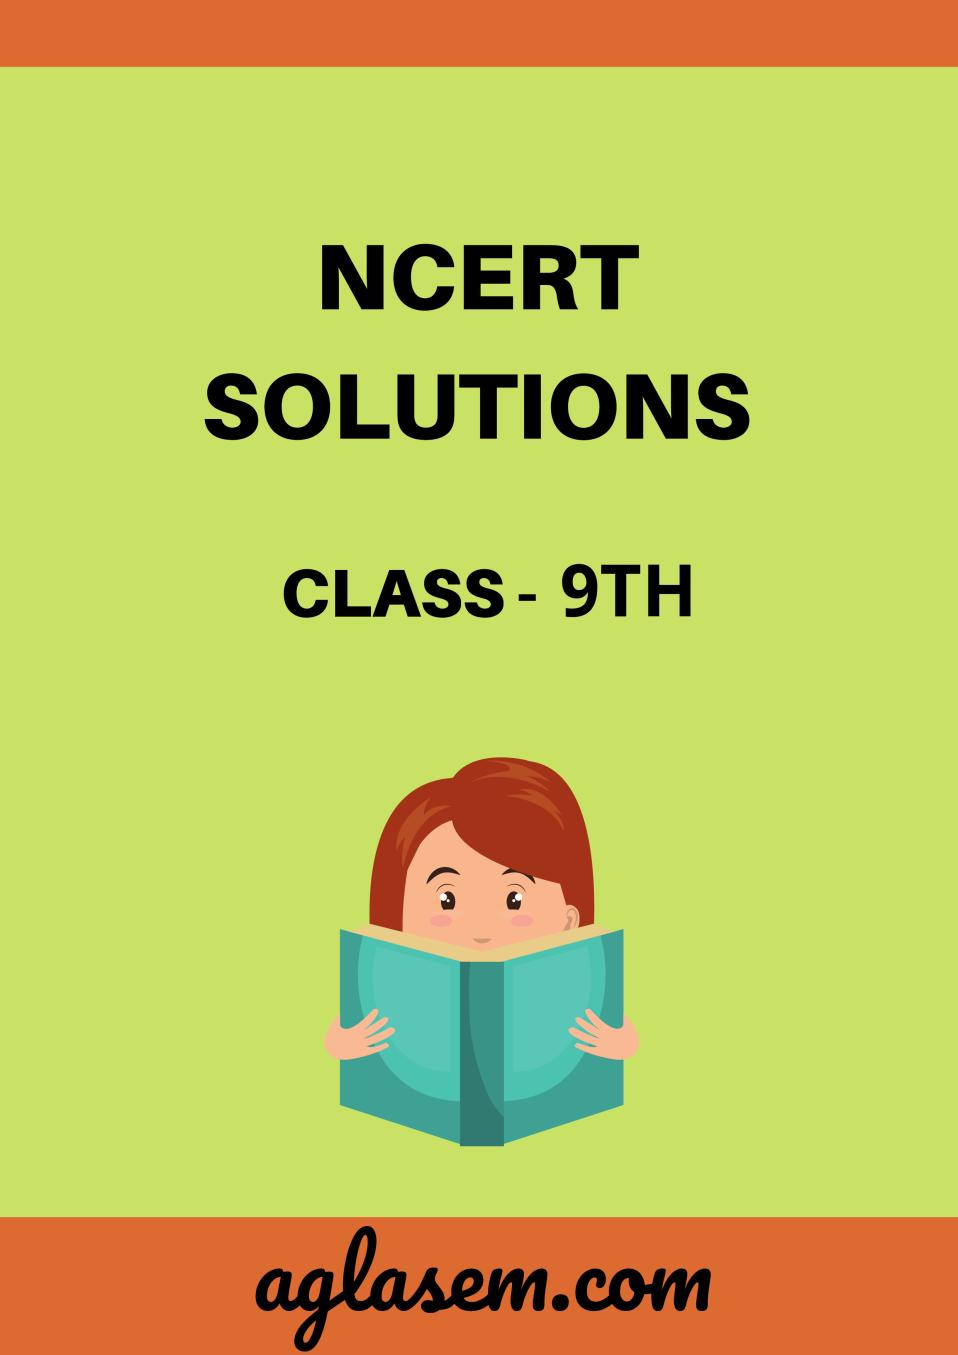 NCERT Solutions for Class 9 English (Beehive) Chapter 8 Reach for the Top